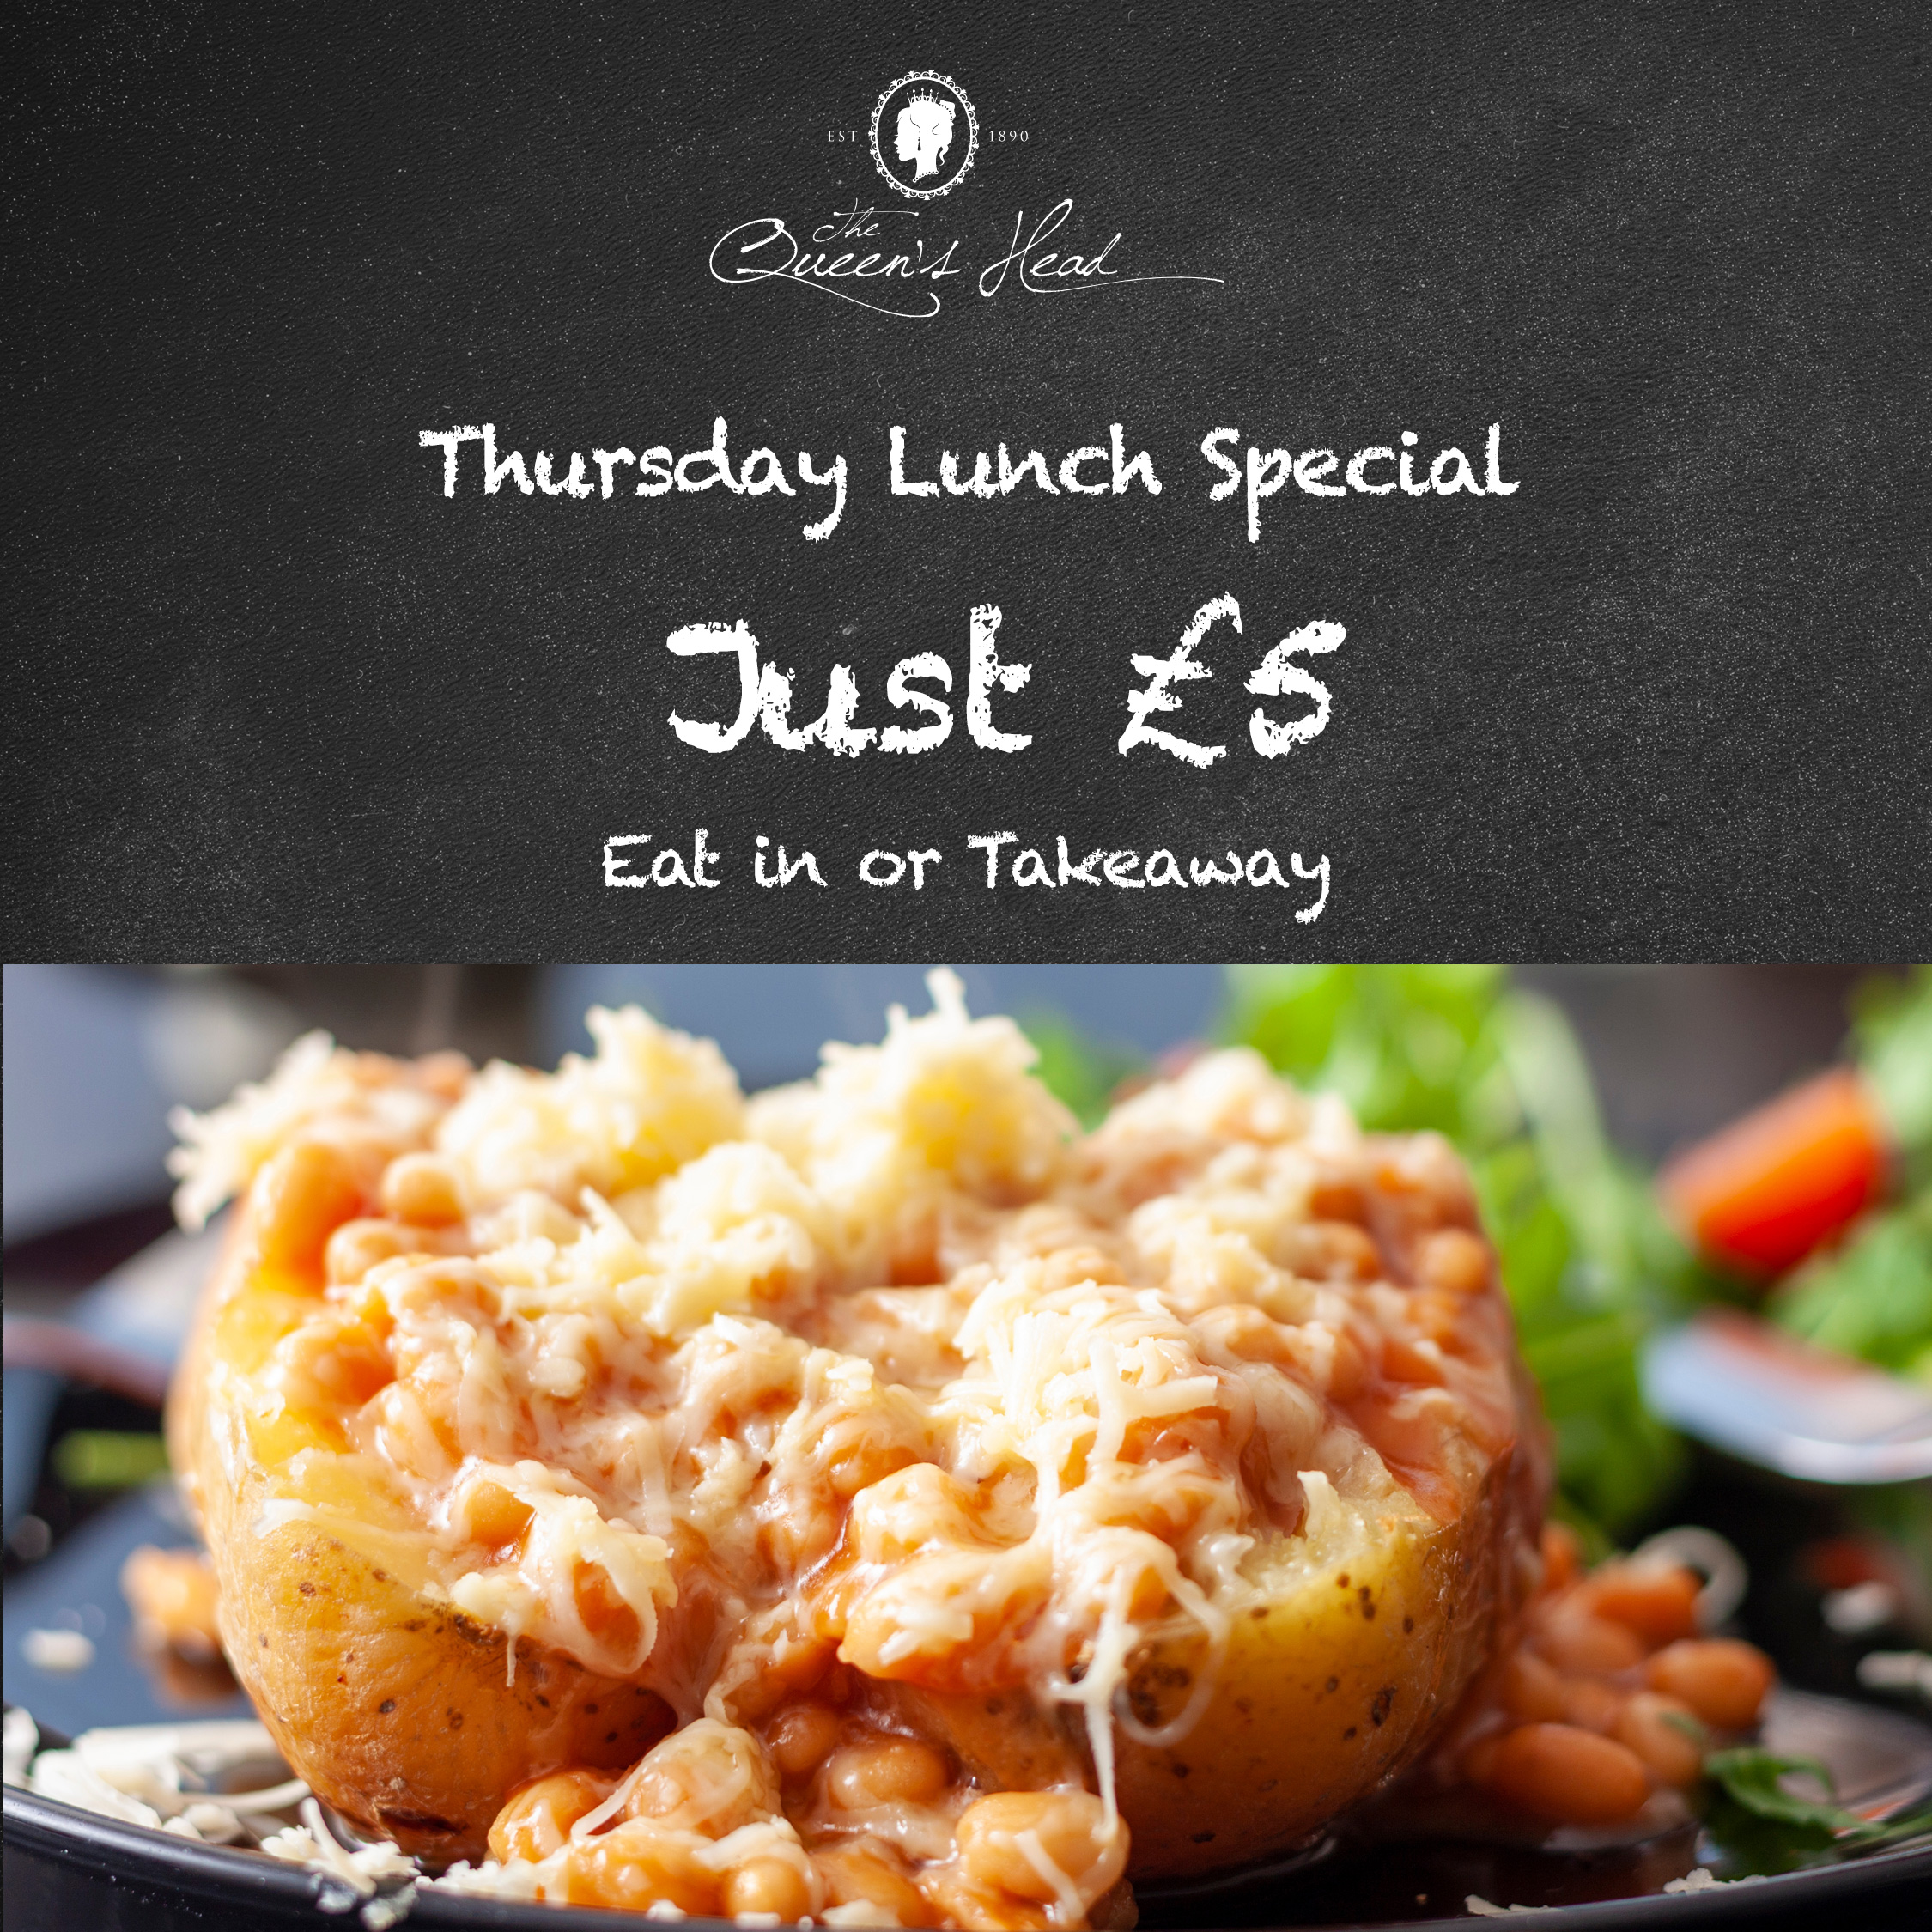 A Lunch Deal to Get your Teeth Into